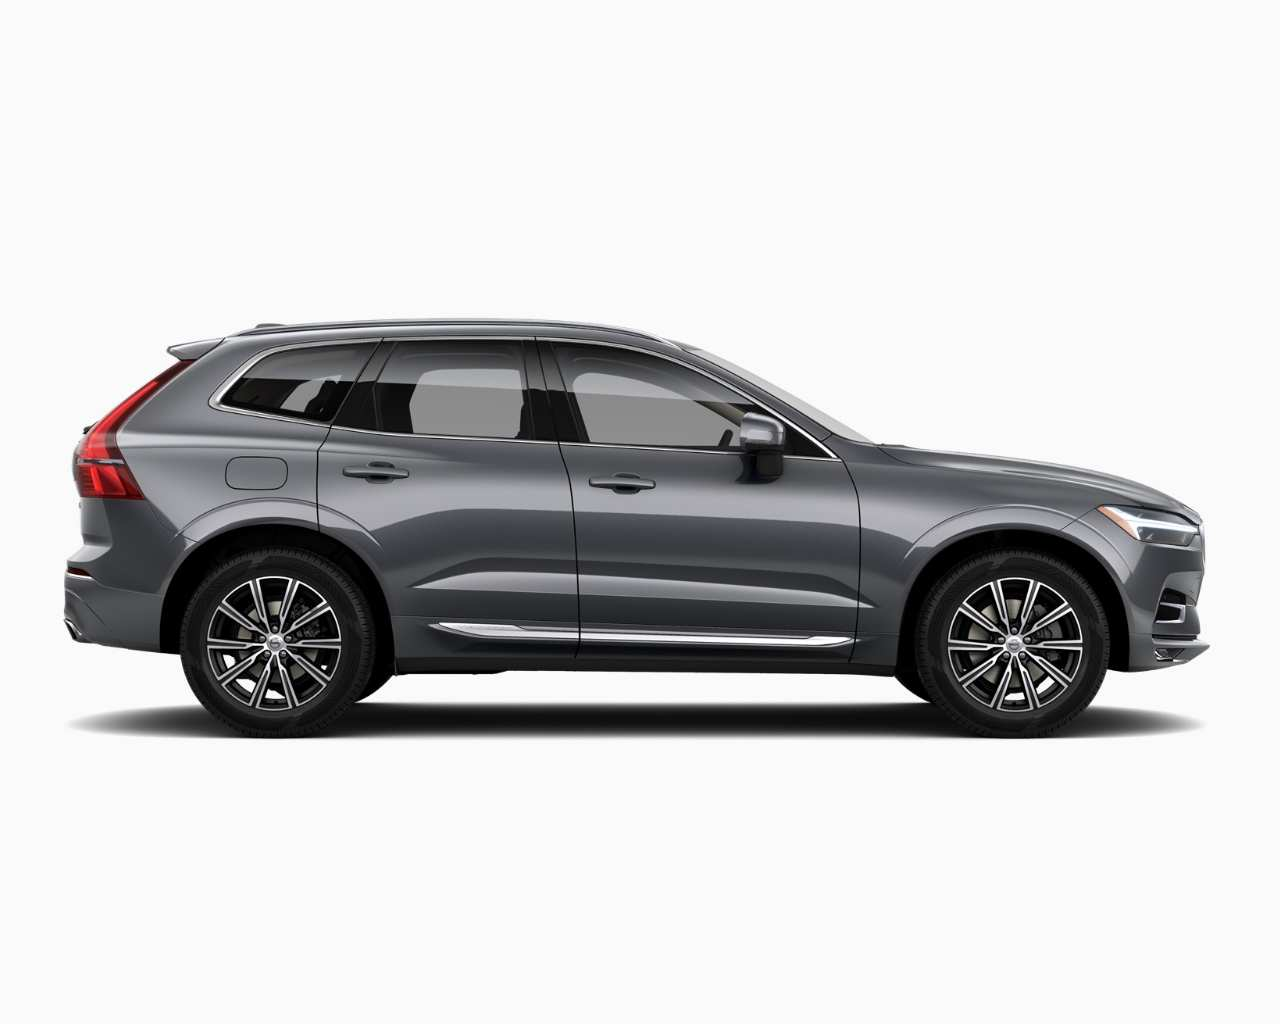 55 Best Volvo Xc60 2019 Osmium Grey Overview